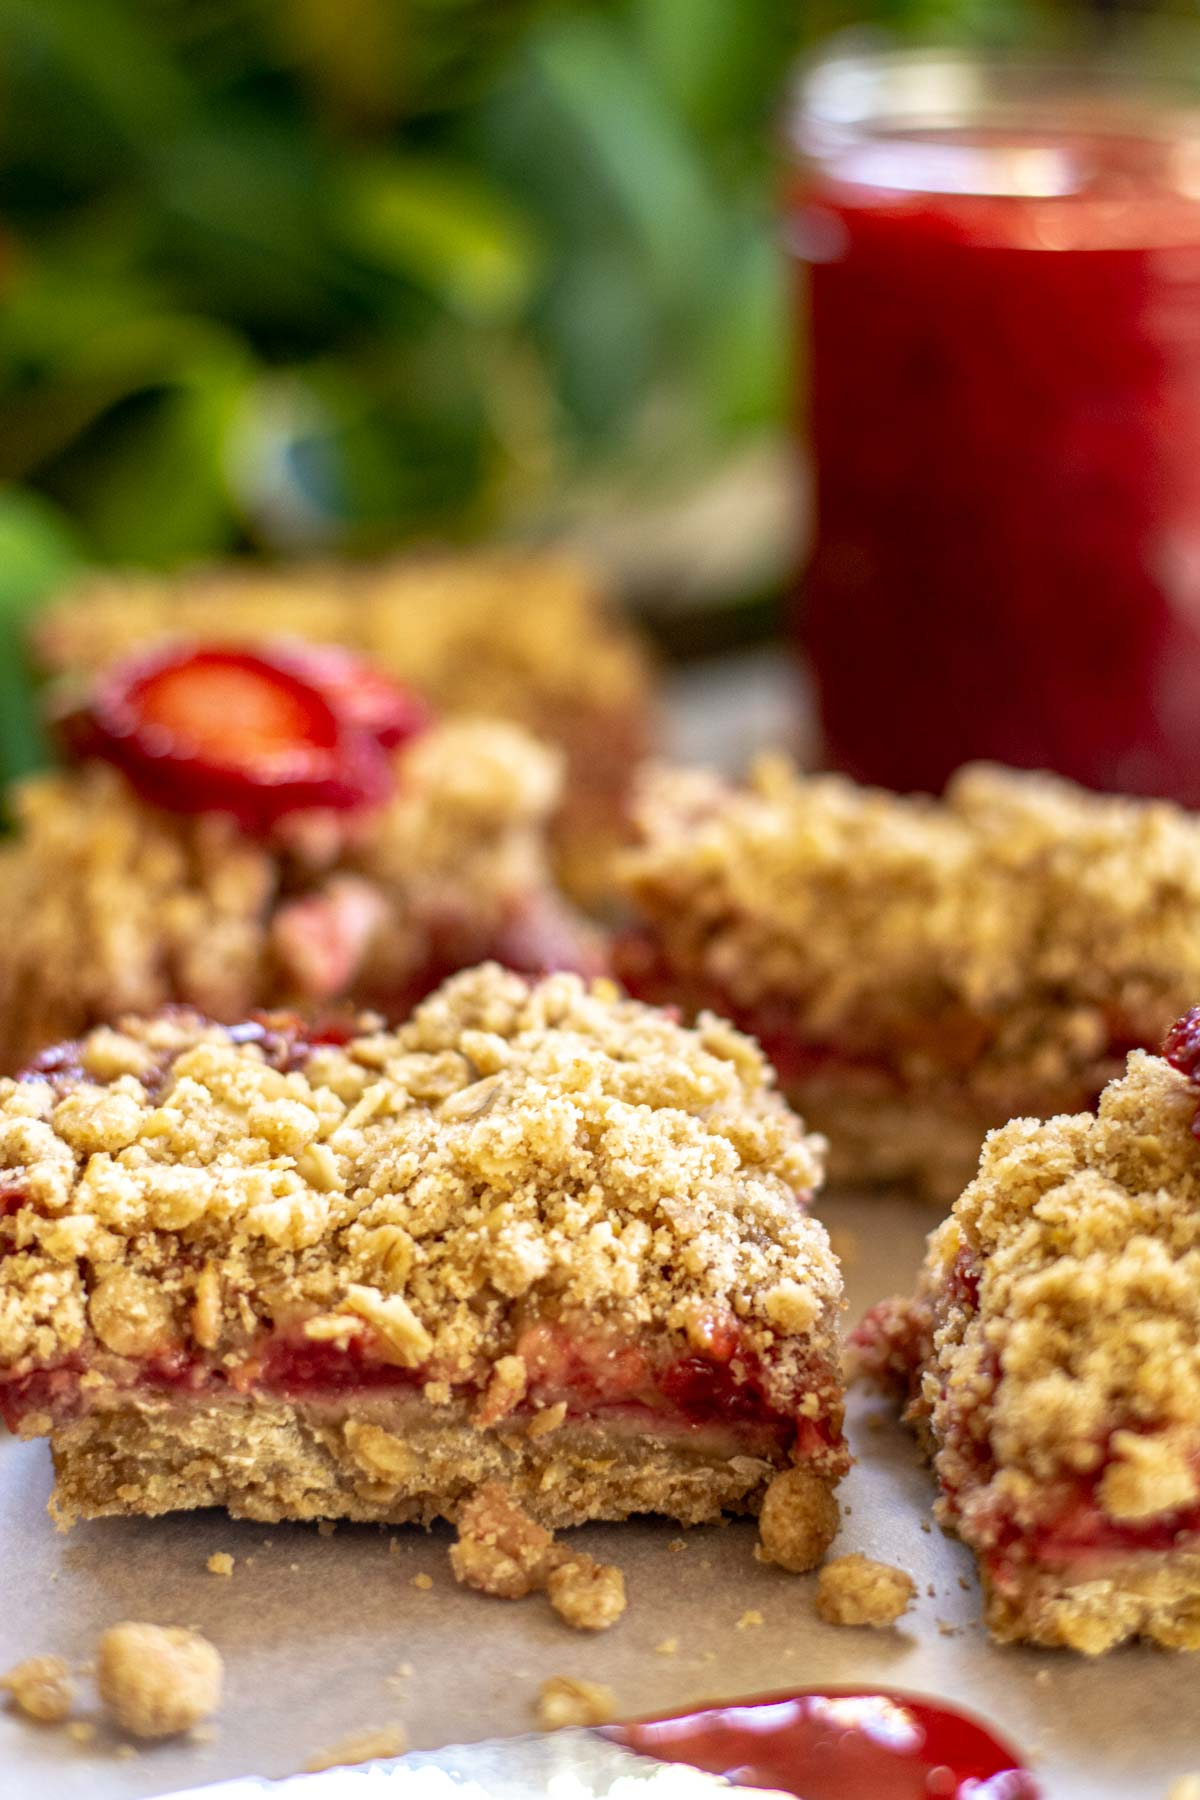 crumbly jam bars and jelly on the counter.